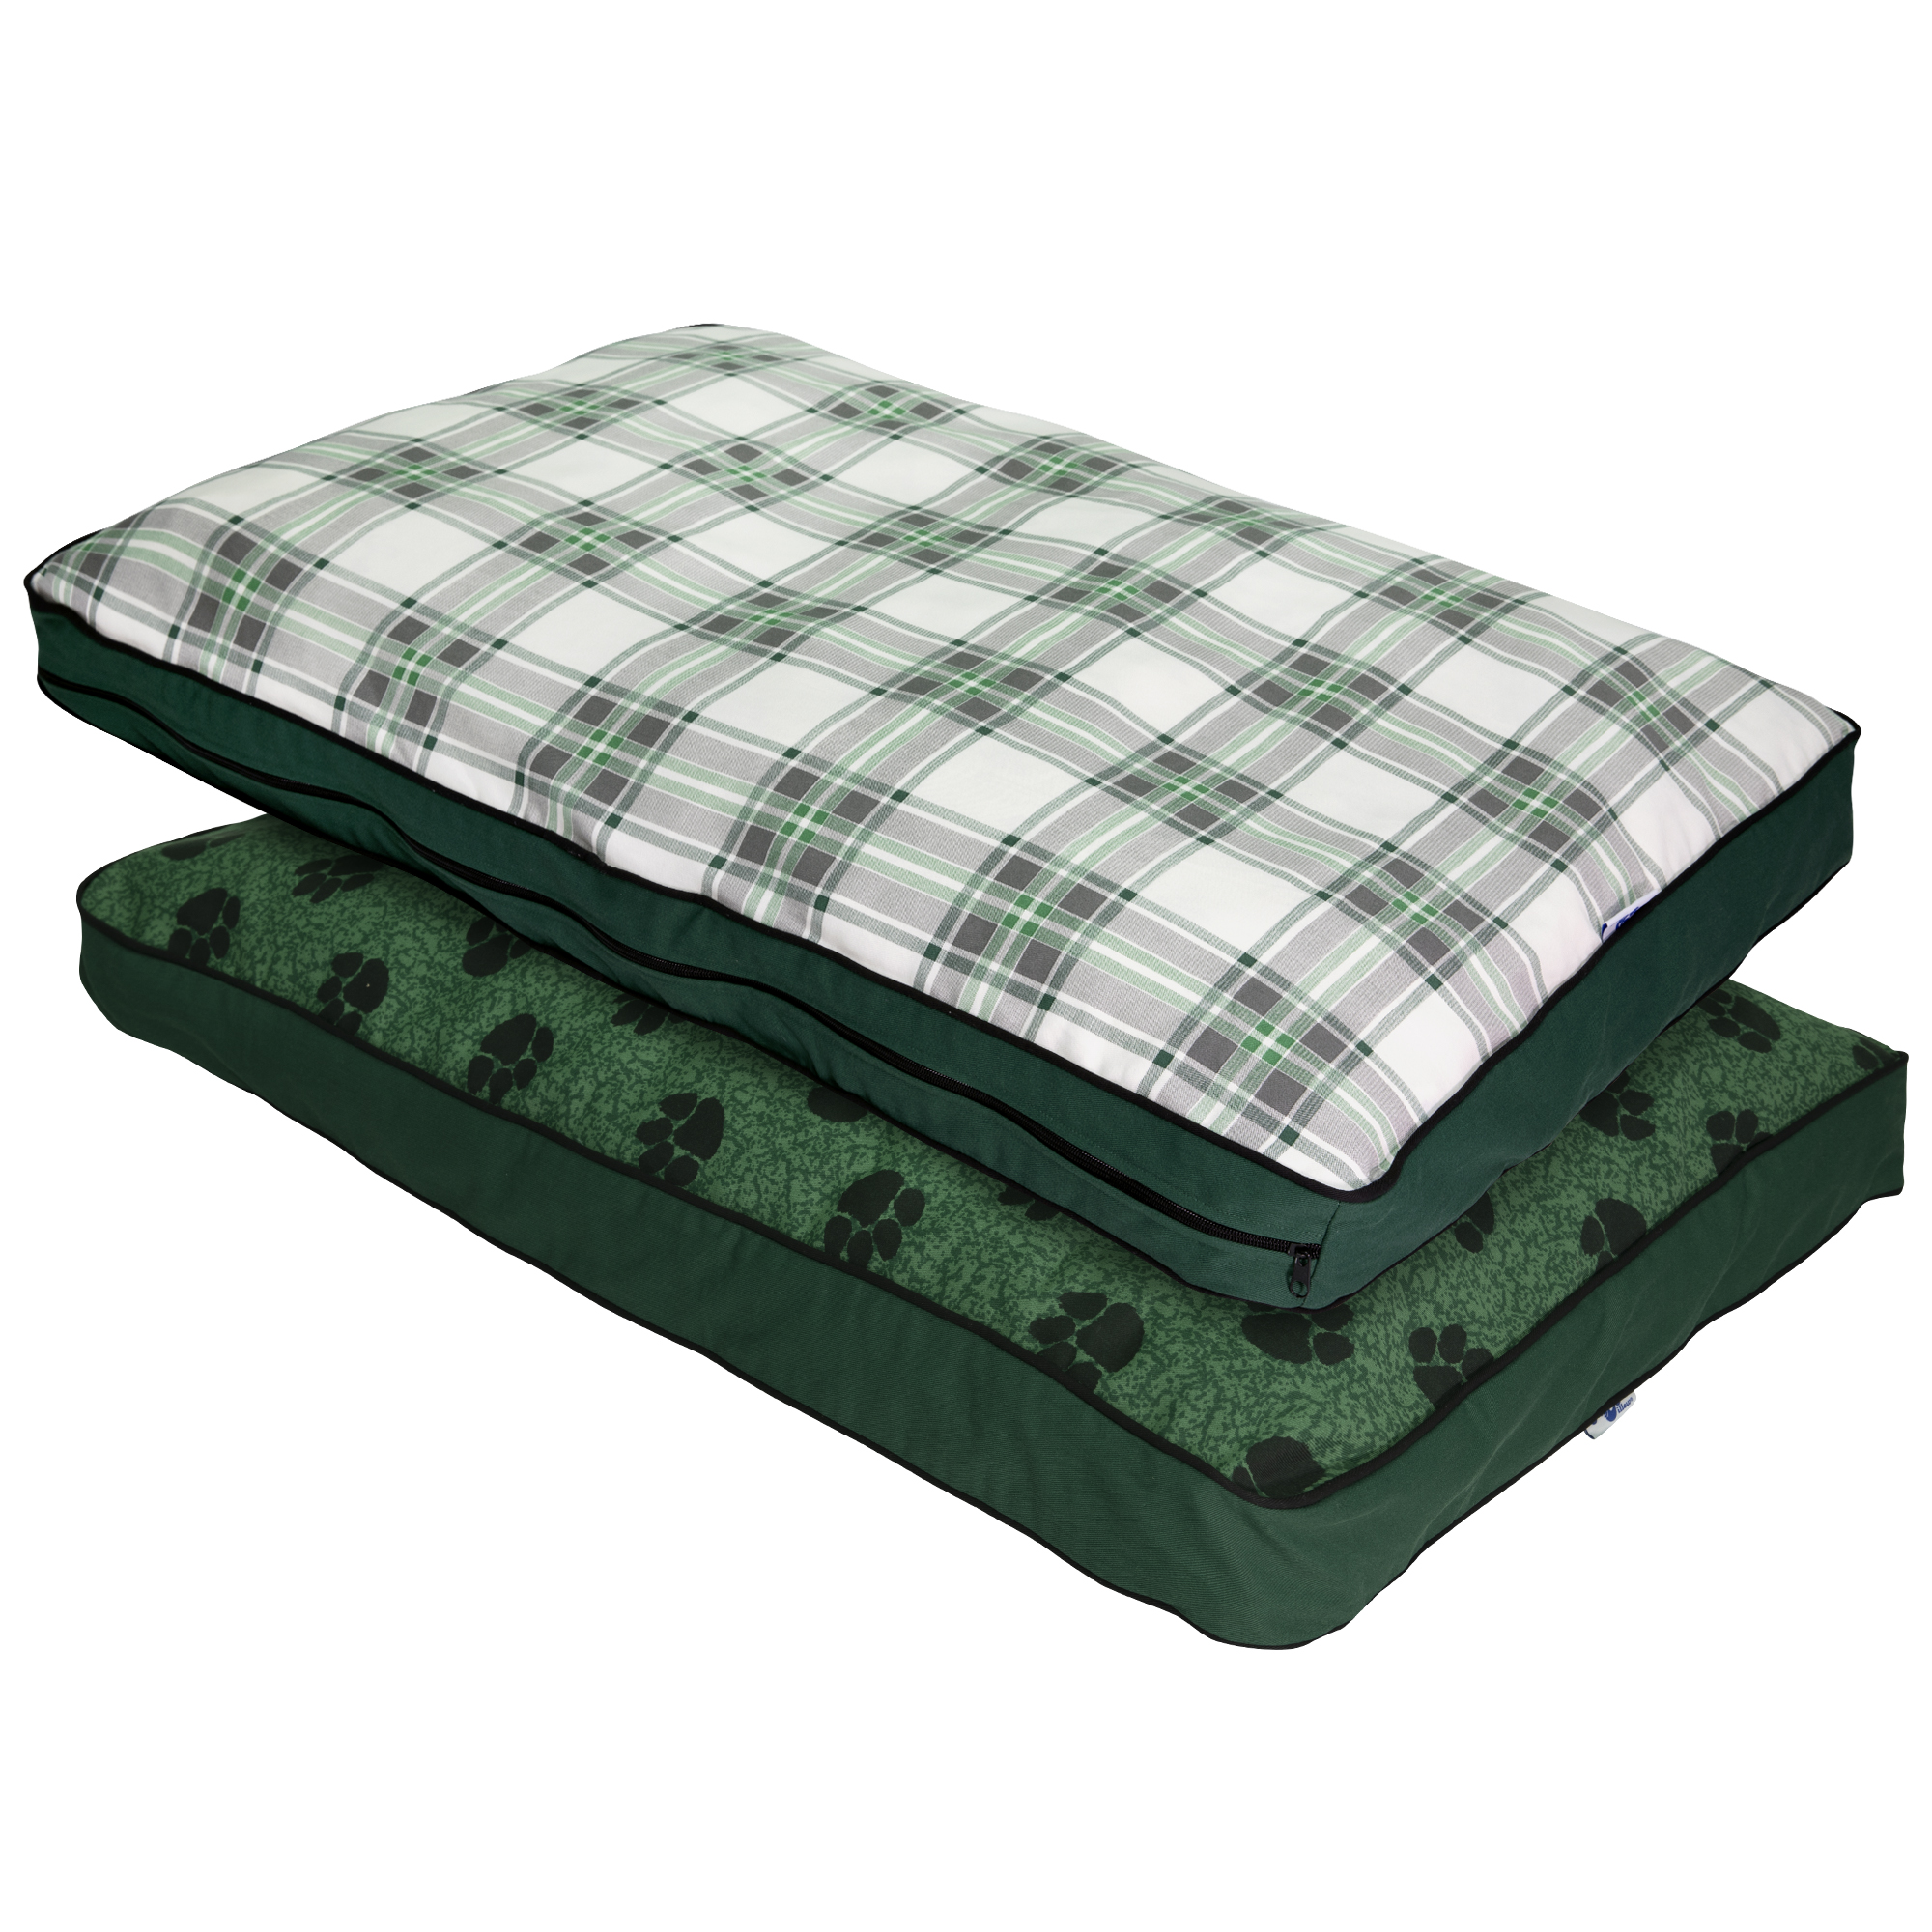 mypillow dog bed large size green 34 x 45